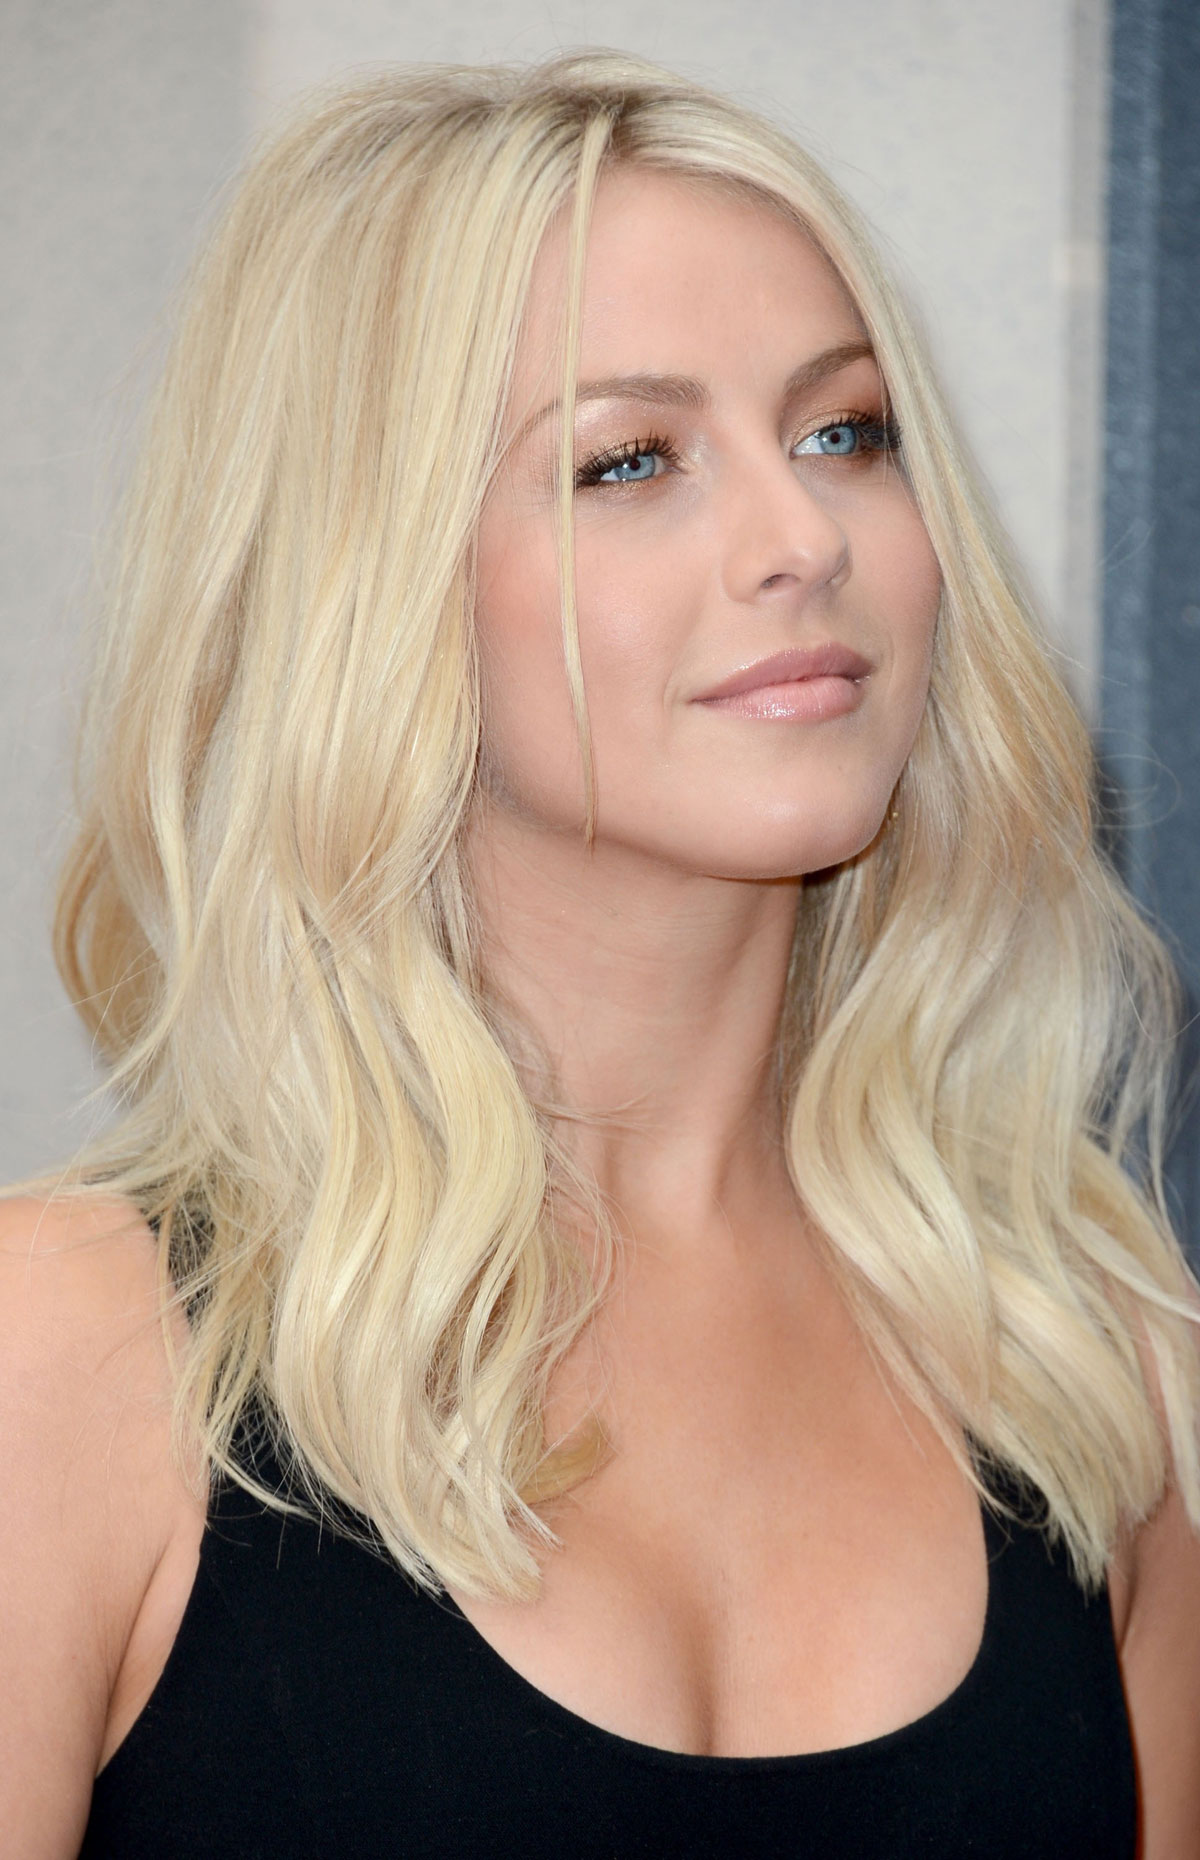 Julianne Hough At Spike Tvs 6th Annual Guys Choice Awards